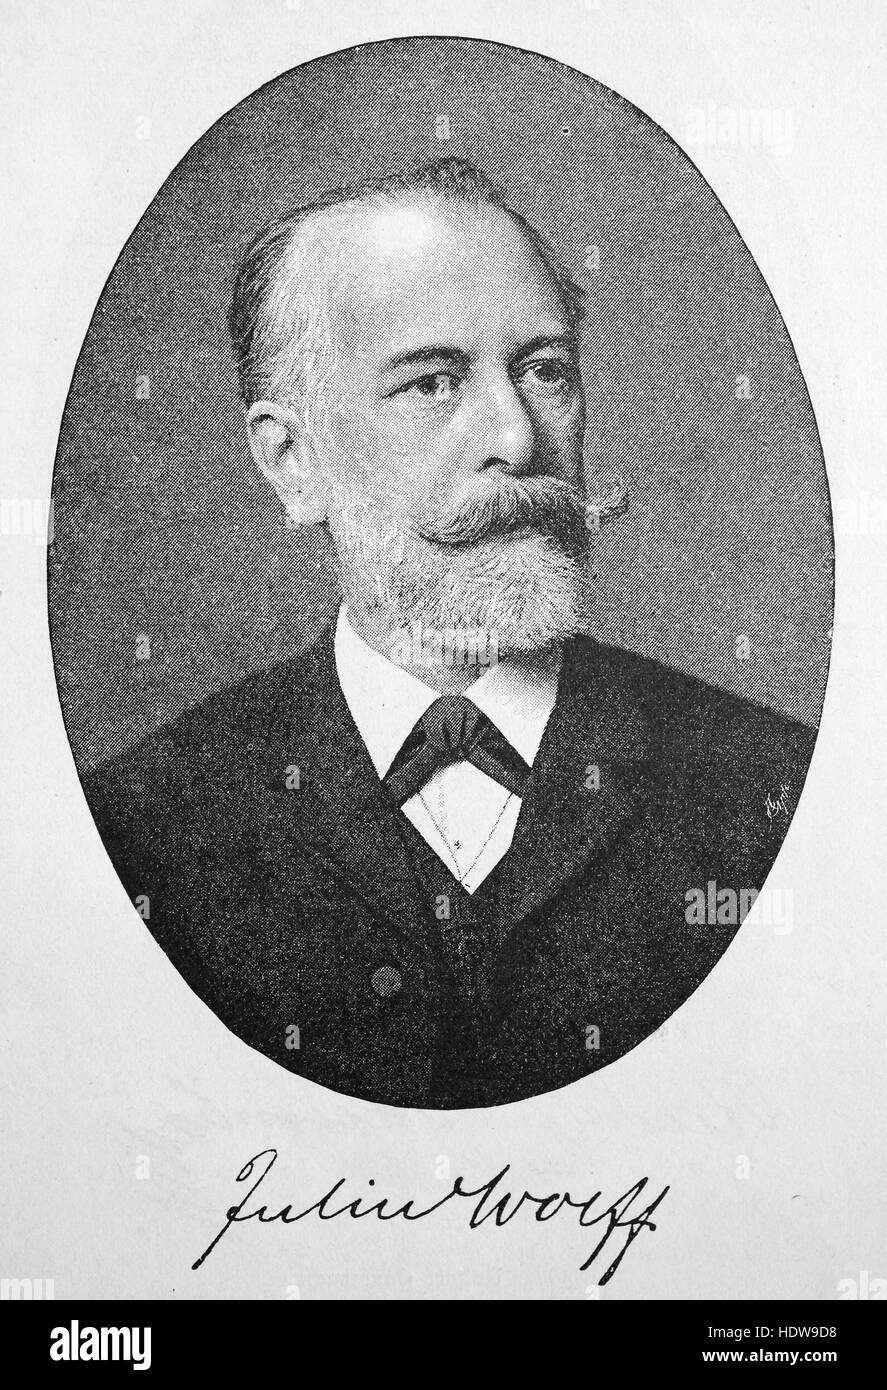 Julius Wolff, 1834 - 1910, German writer and poet, woodcut from the year 1880 Stock Photo